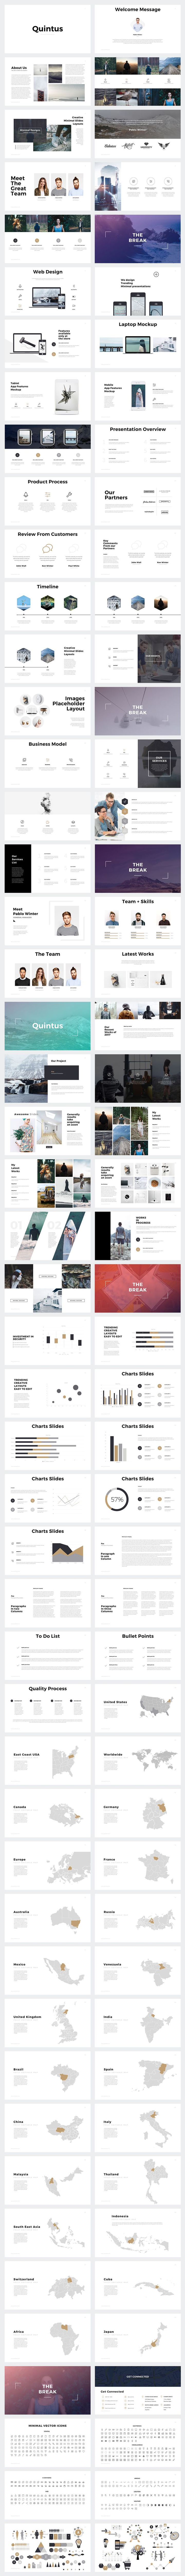 Quintus Minimal PowerPoint Template on Behance